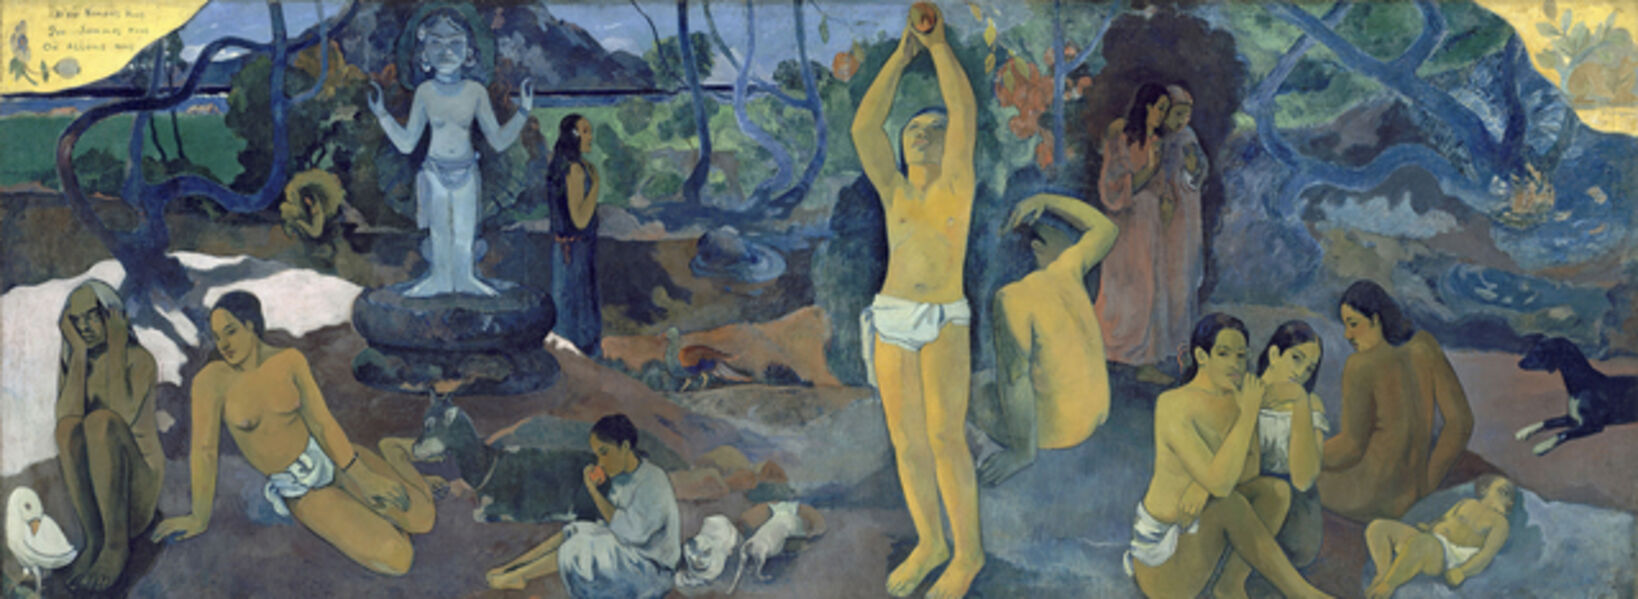 Paul Gauguin, 'D'où venons-nous? Que sommes-nous? Où allons-nous? (Where Do We Come From? What Are We? Where Are We Going?)'